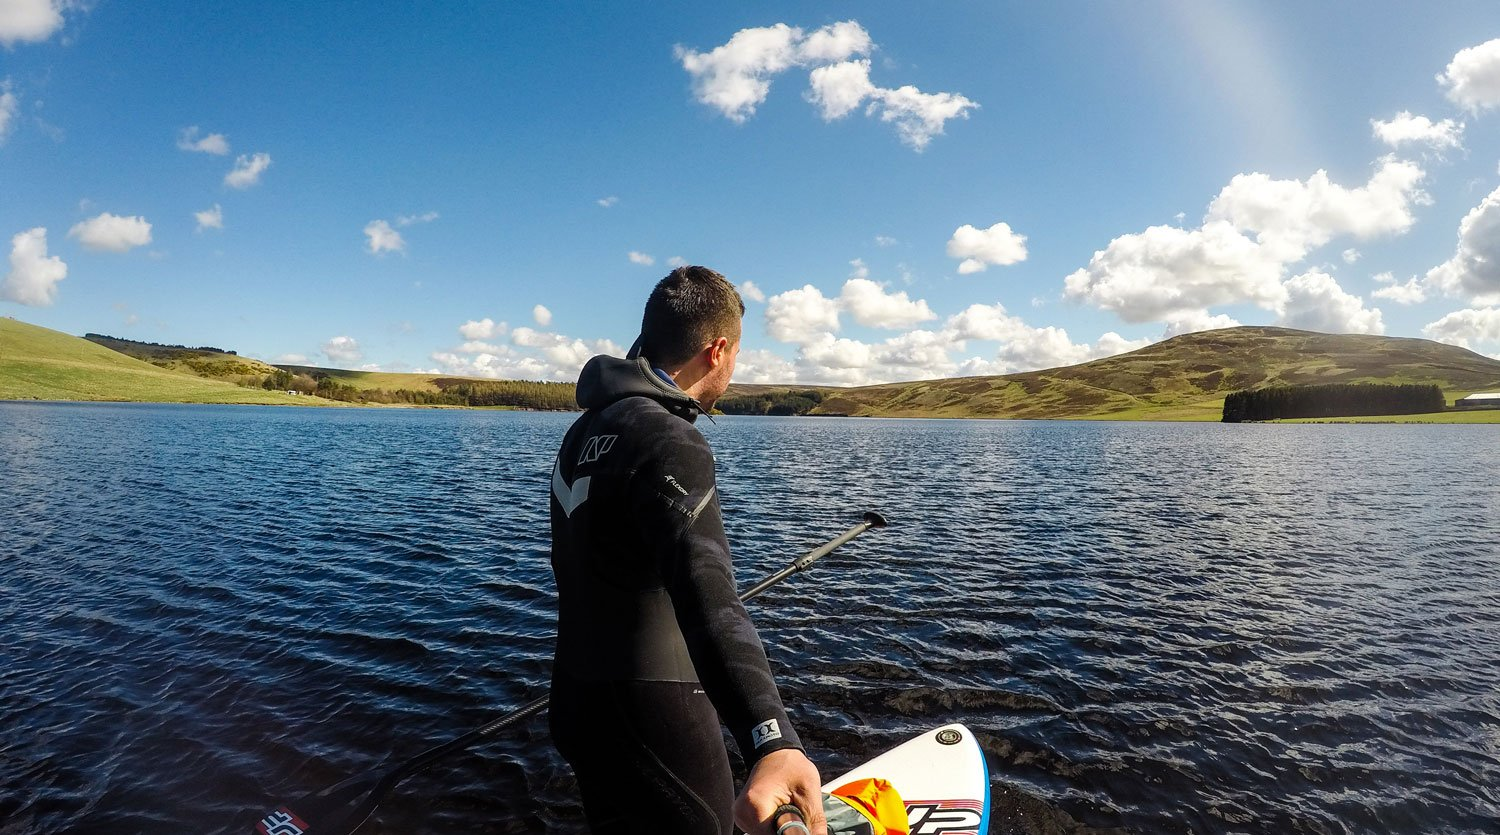 SUP Lessons Edinburgh, SUP Lessons Fife, SUP Lessons Dunbar, SUP Lessons East Lothian, SUP Lessons Troon, SUP Lessons Dundee